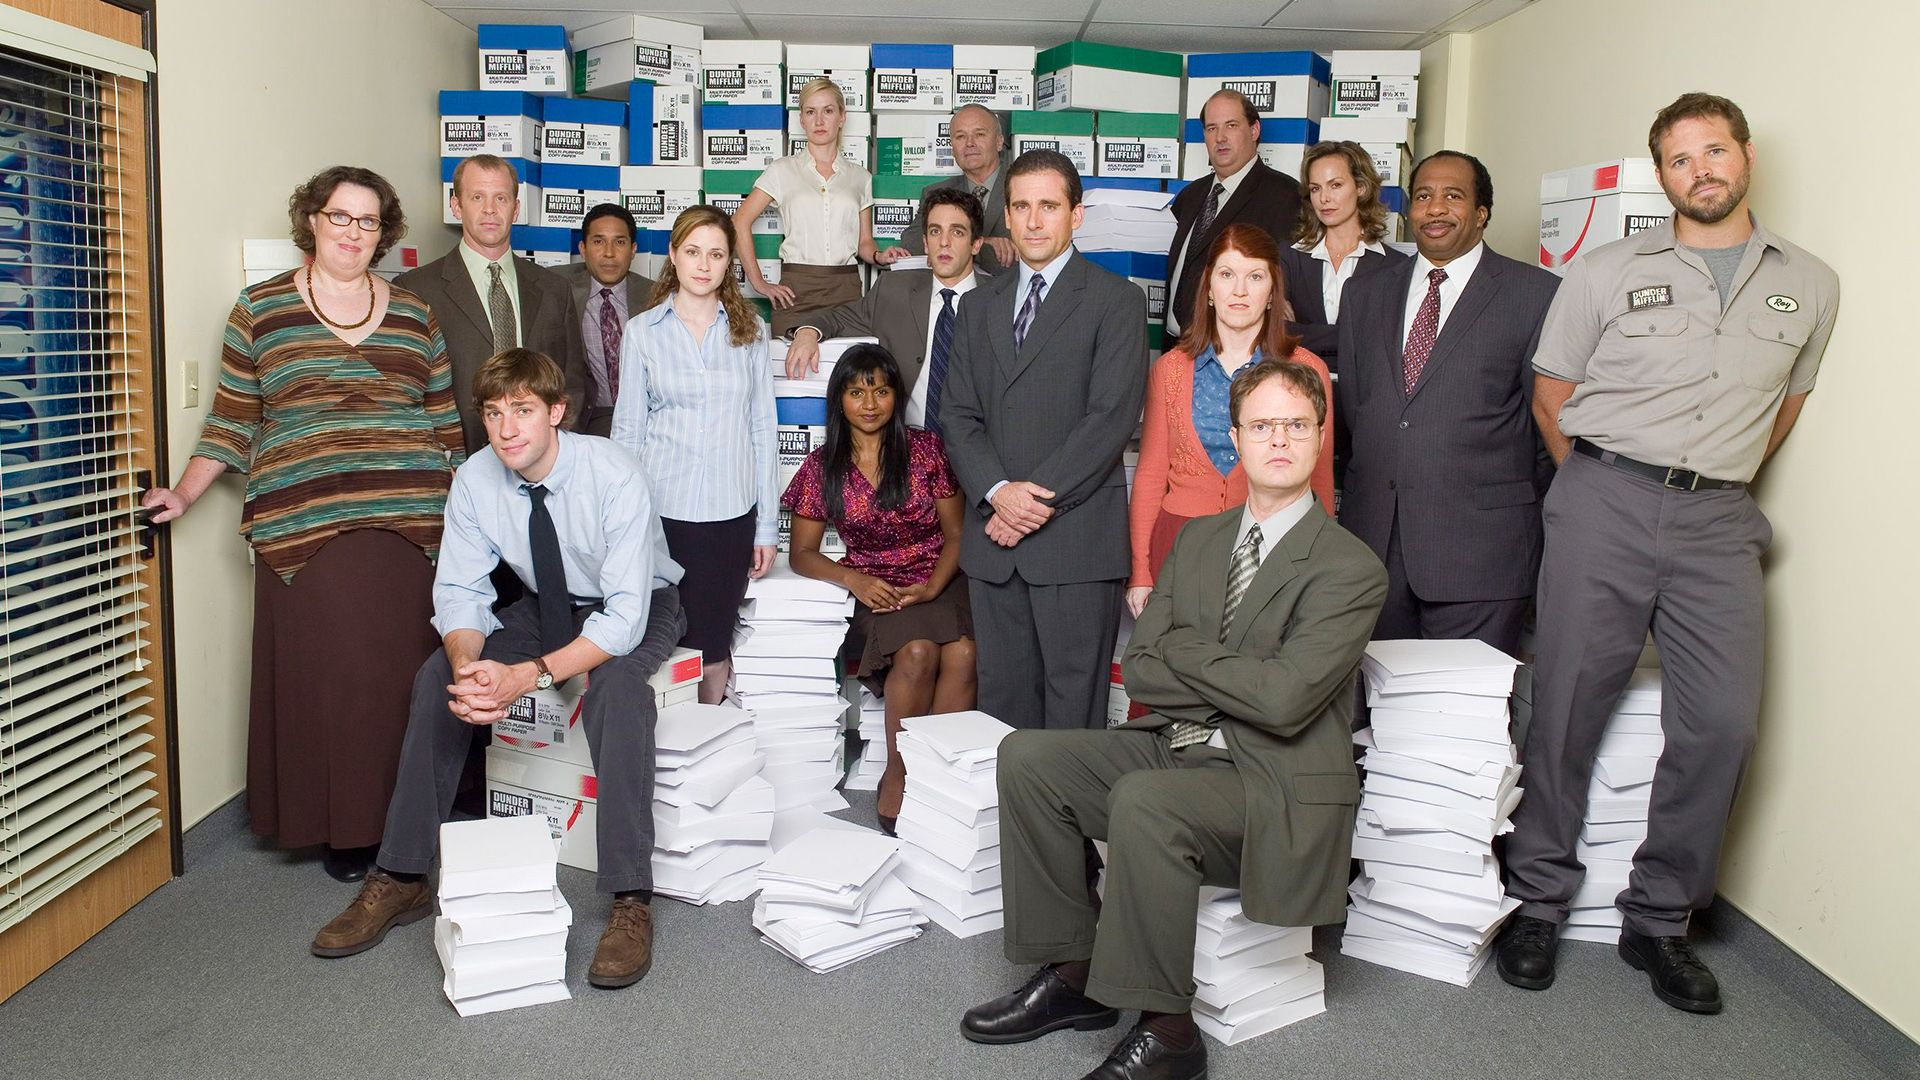 The Office cast are reuniting for a new series, but there's a twist